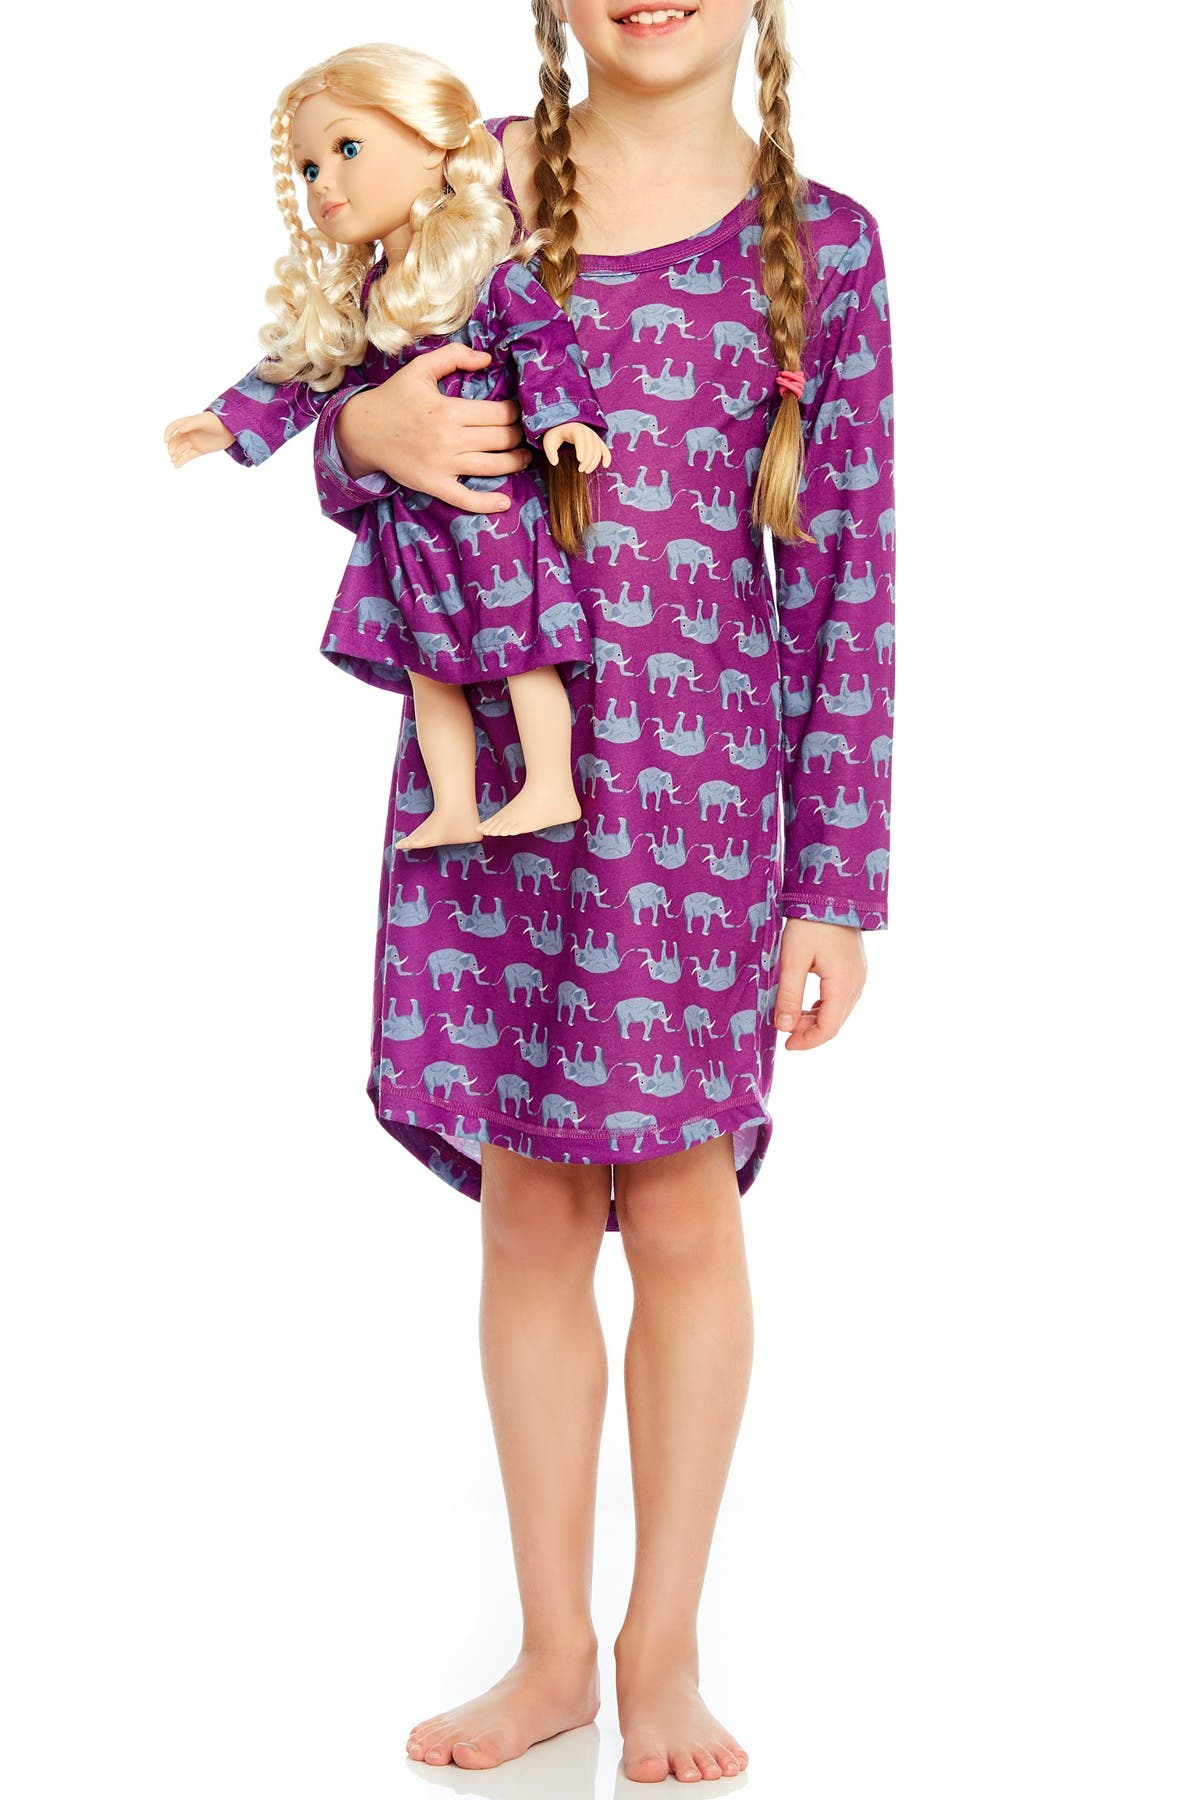 Image of Leveret Elephant Nightgown & Matching Doll Nightgown